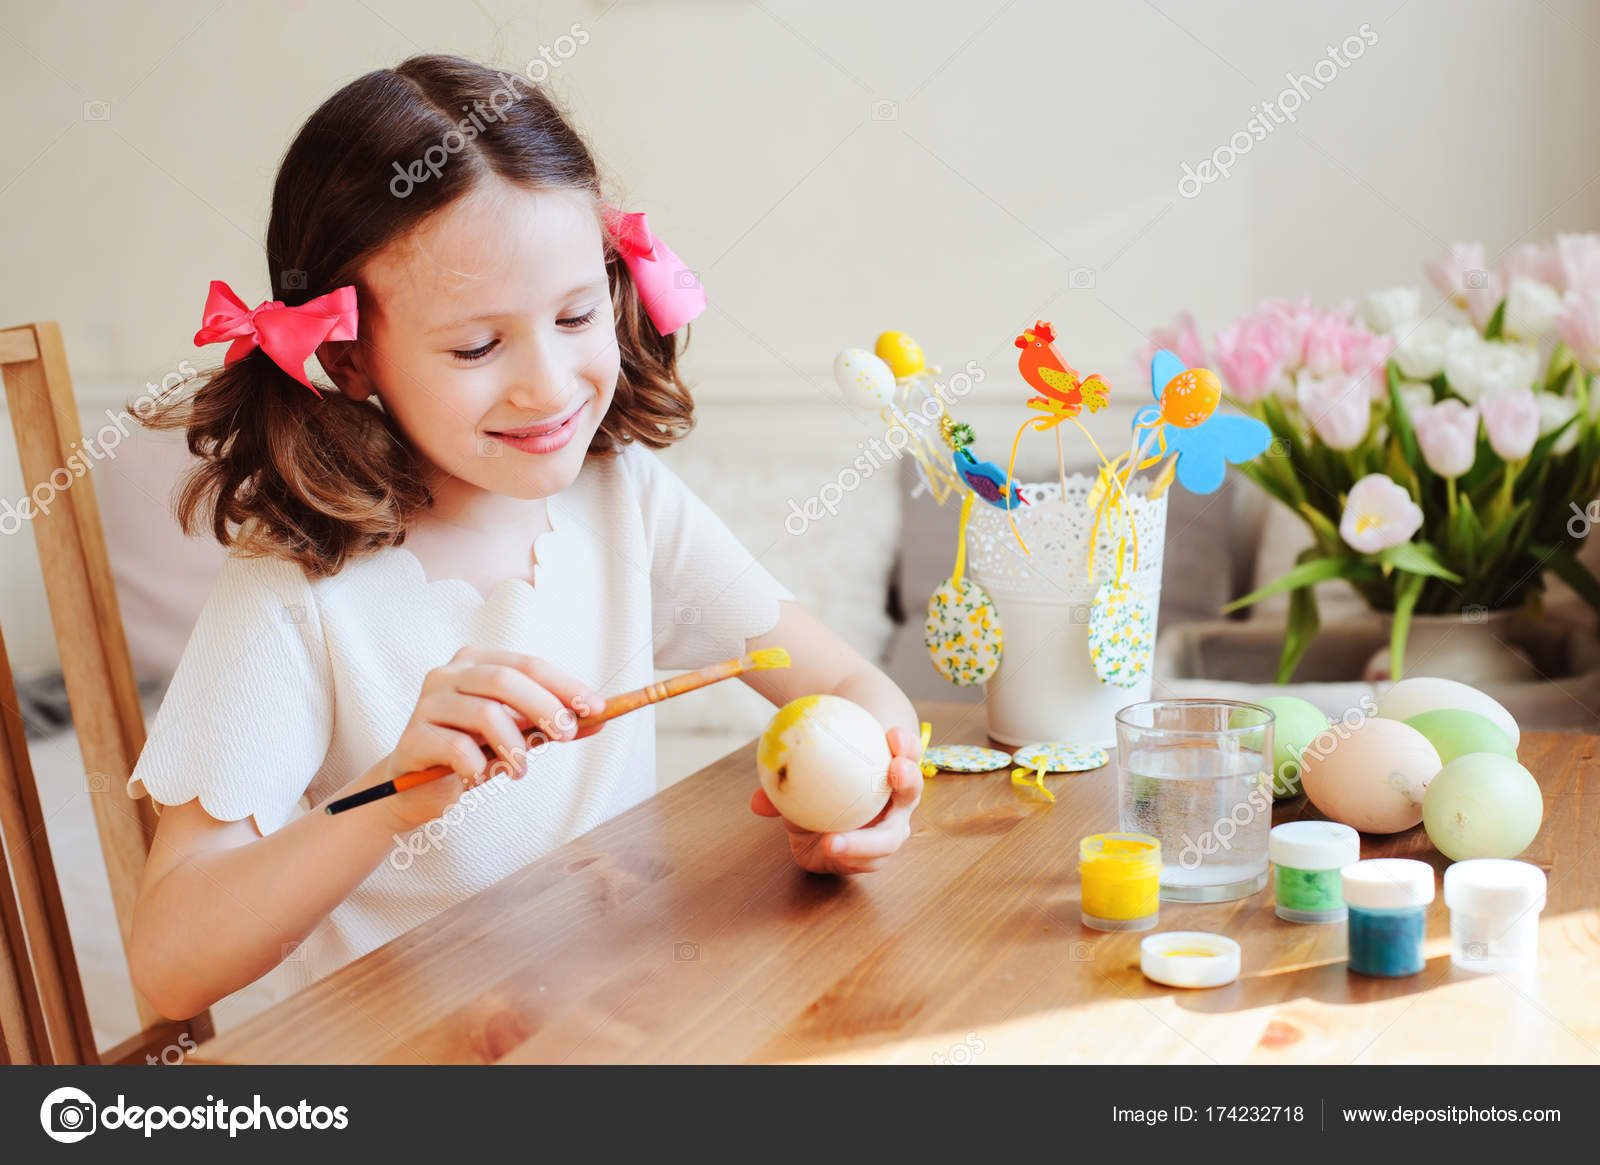 Easter Craft Kids Painting Eggs Home Seasonal Spring Decorations